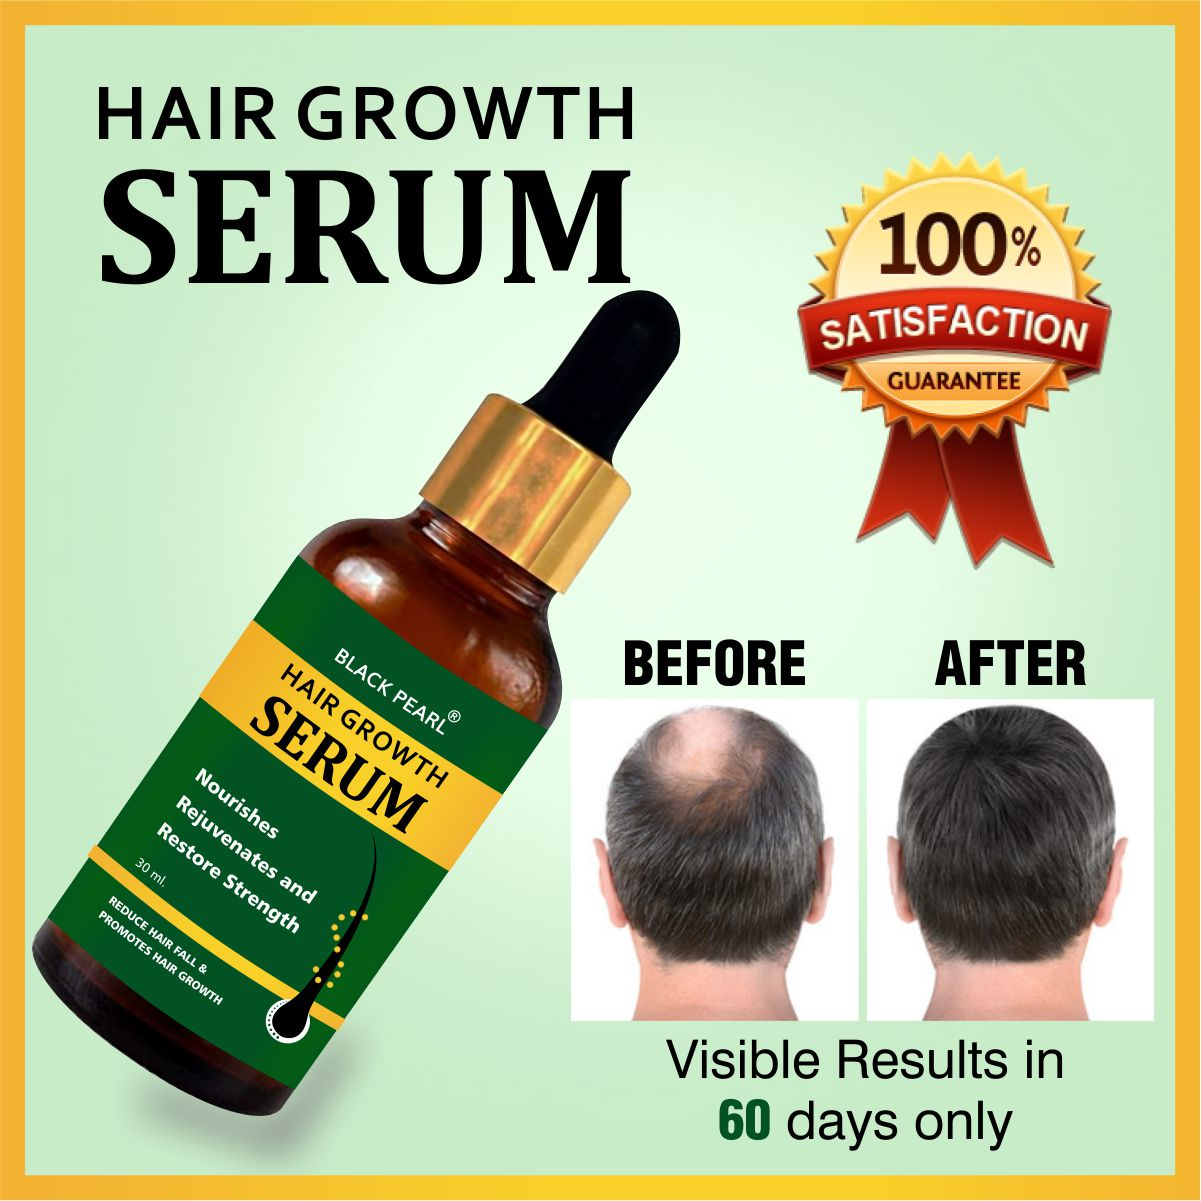 Hair Growth Serum Before After